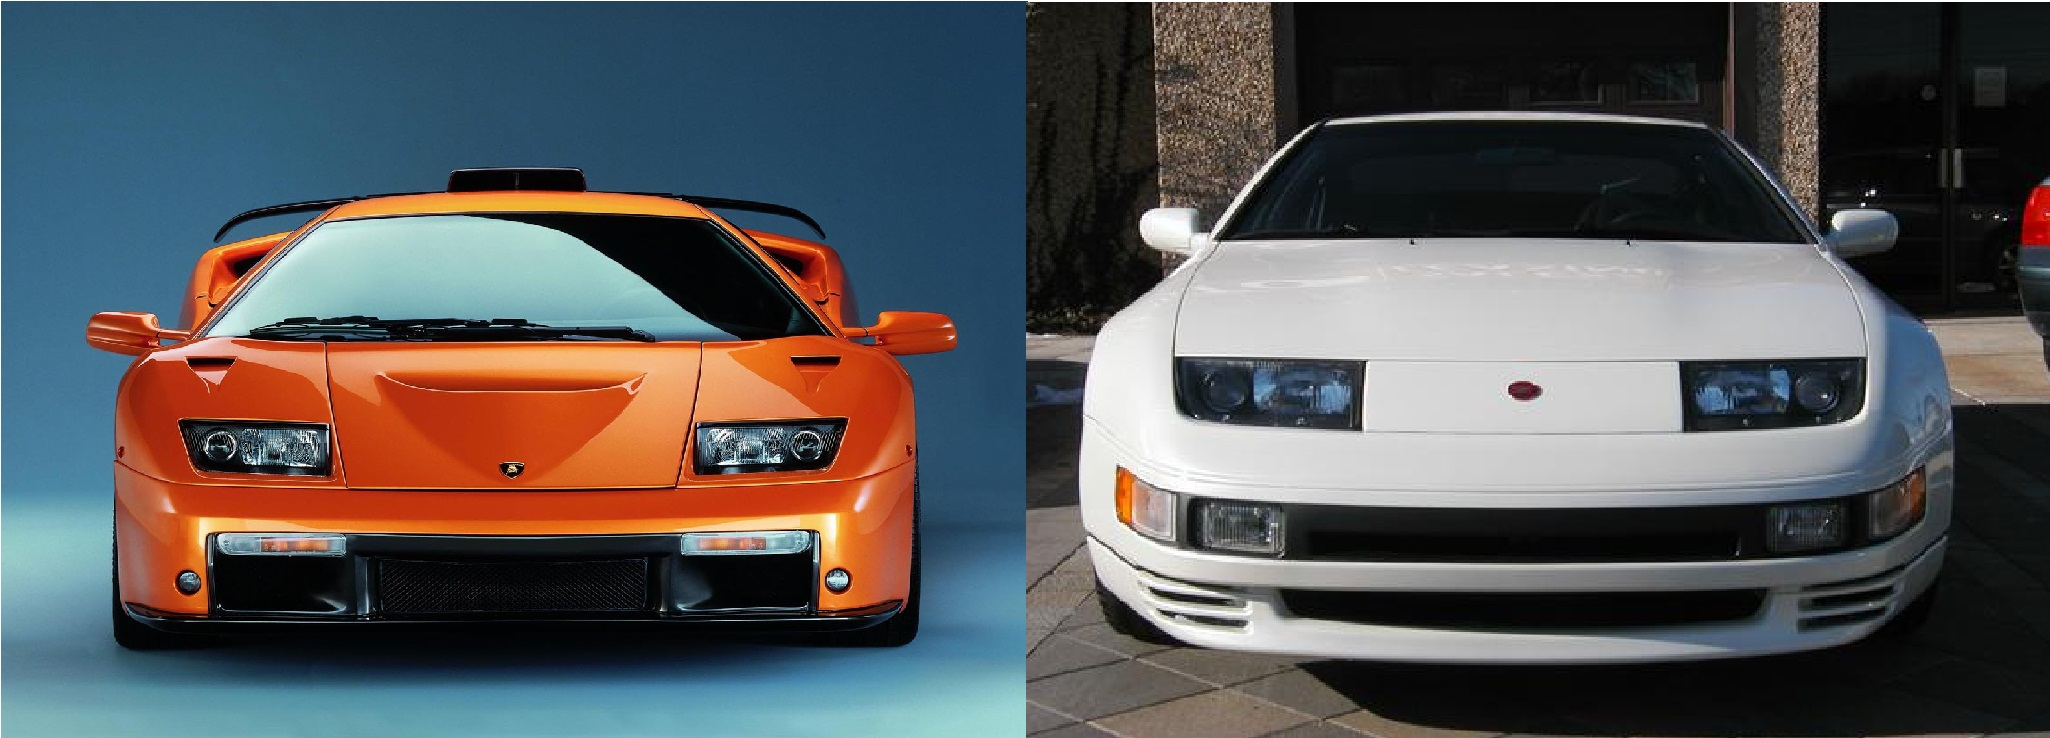 I Just Realized The Diablo And The 300zx Share The Same